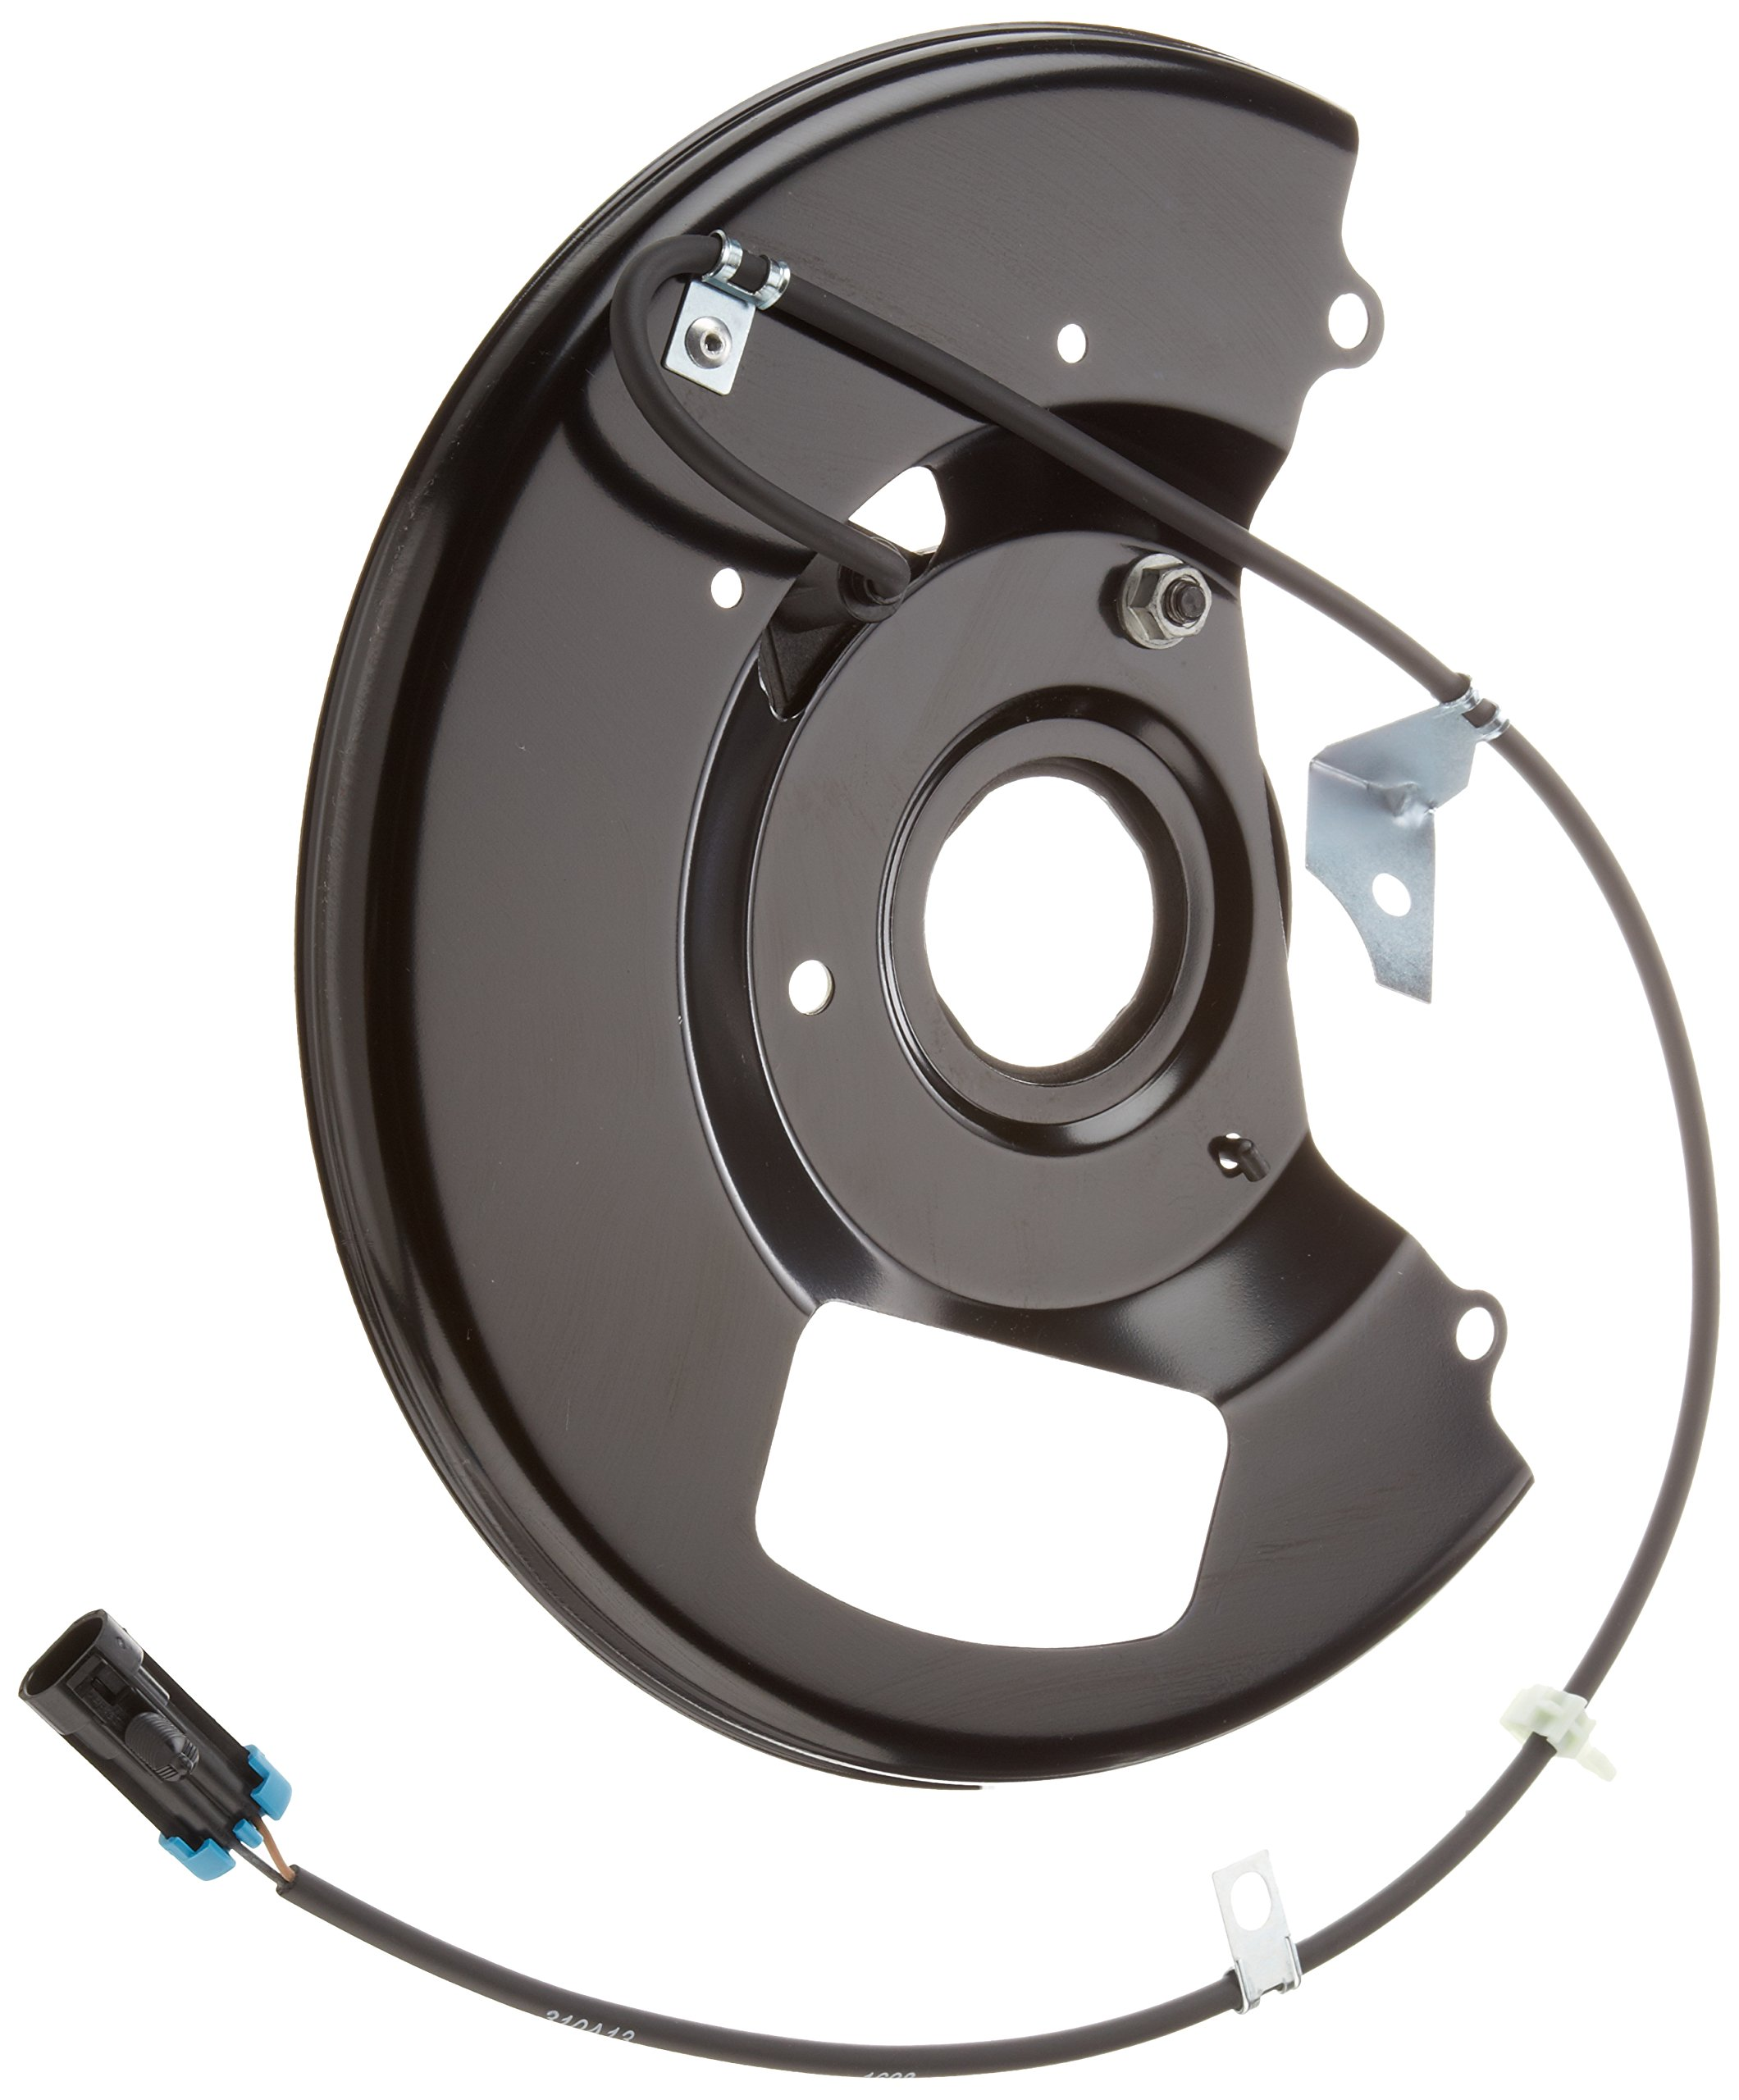 ACDelco 19211698 GM Original Equipment Front Passenger Side Brake Dust Shield by ACDelco